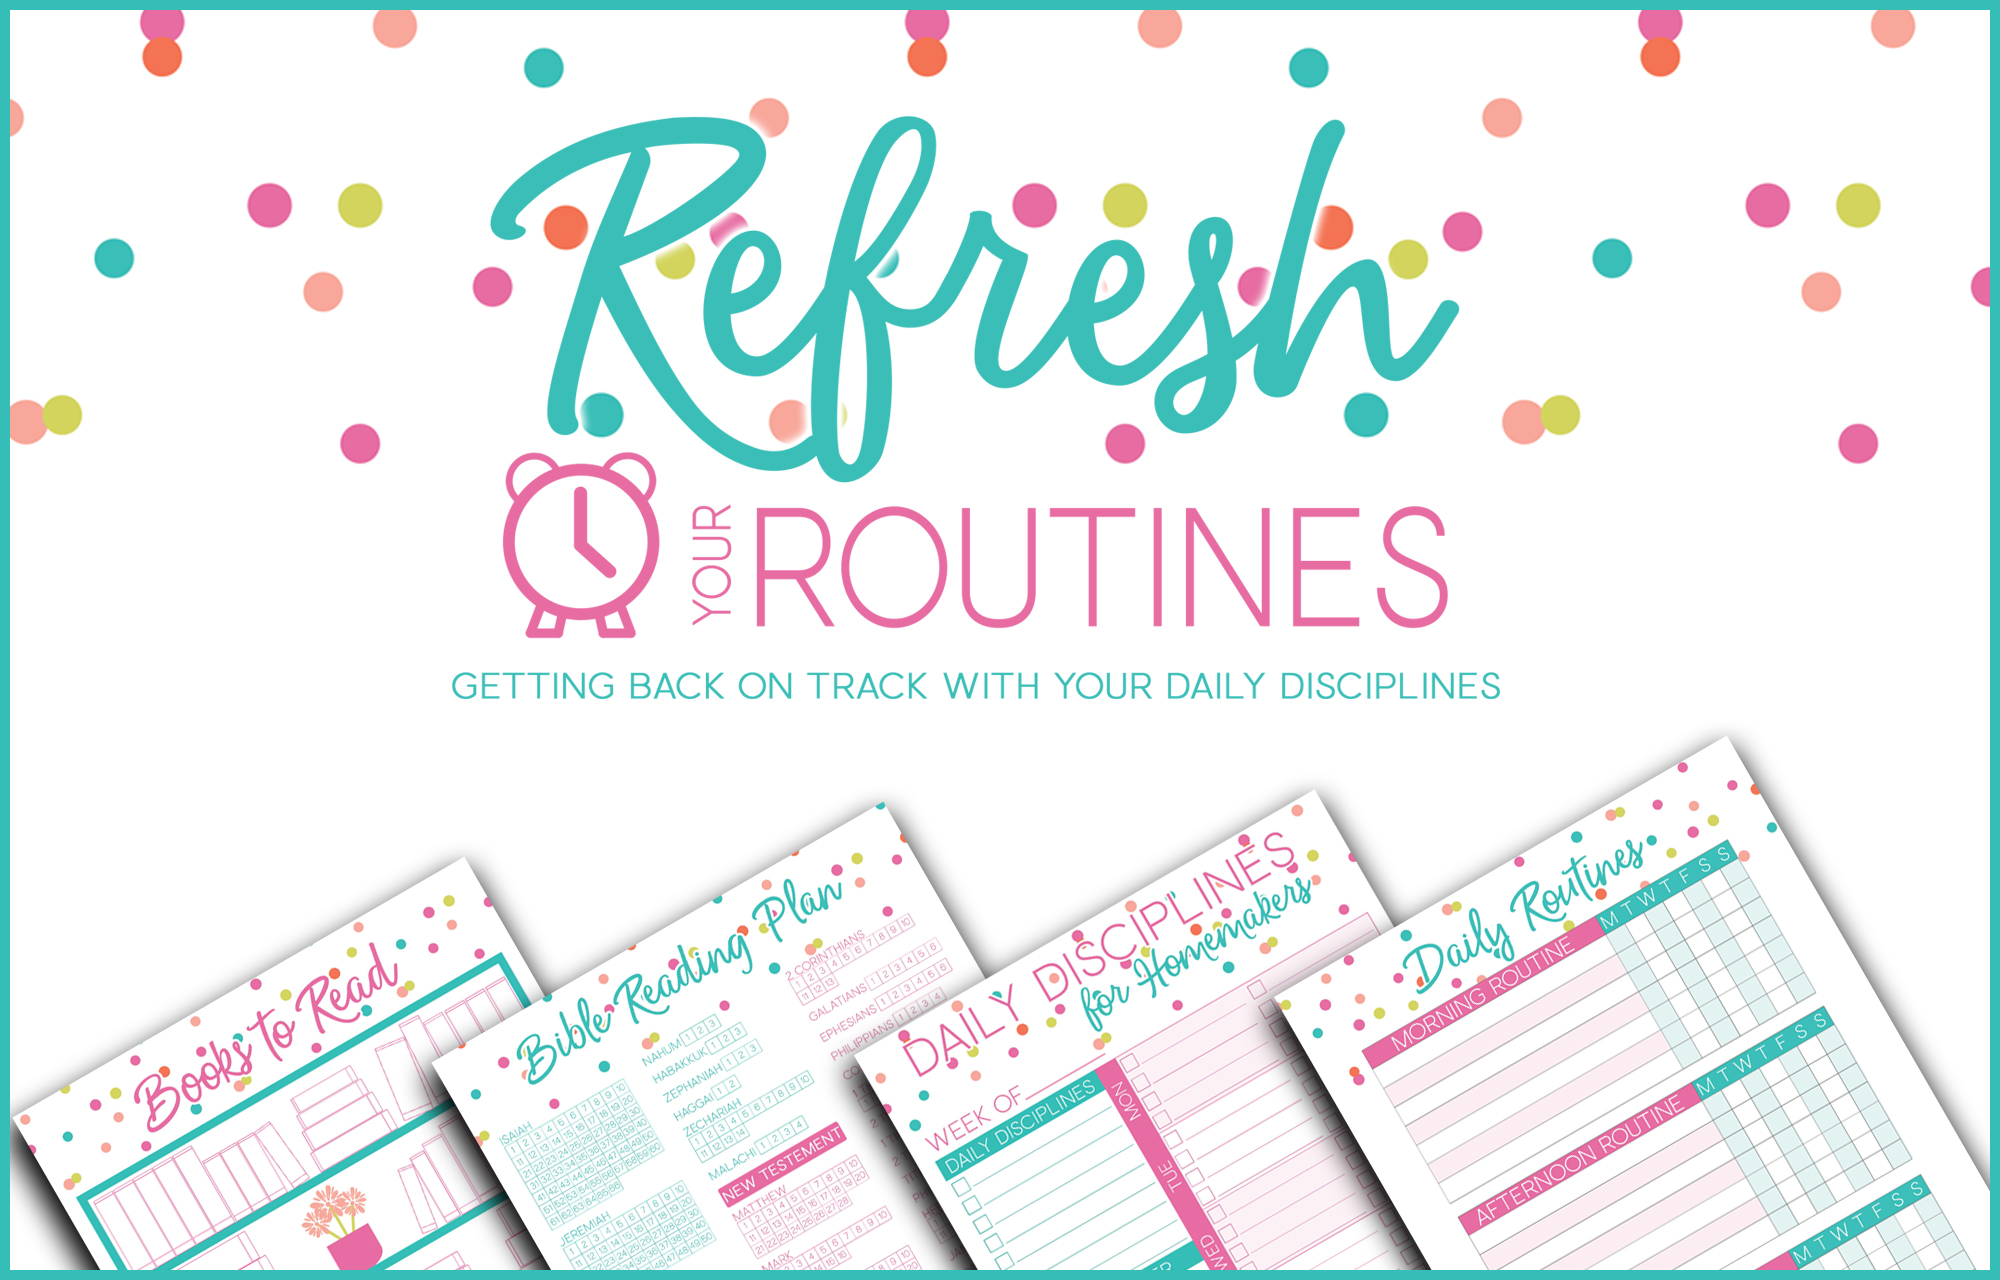 Get back on track with your daily disciplines with the help of the FREE Refresh Your Routines eKit.